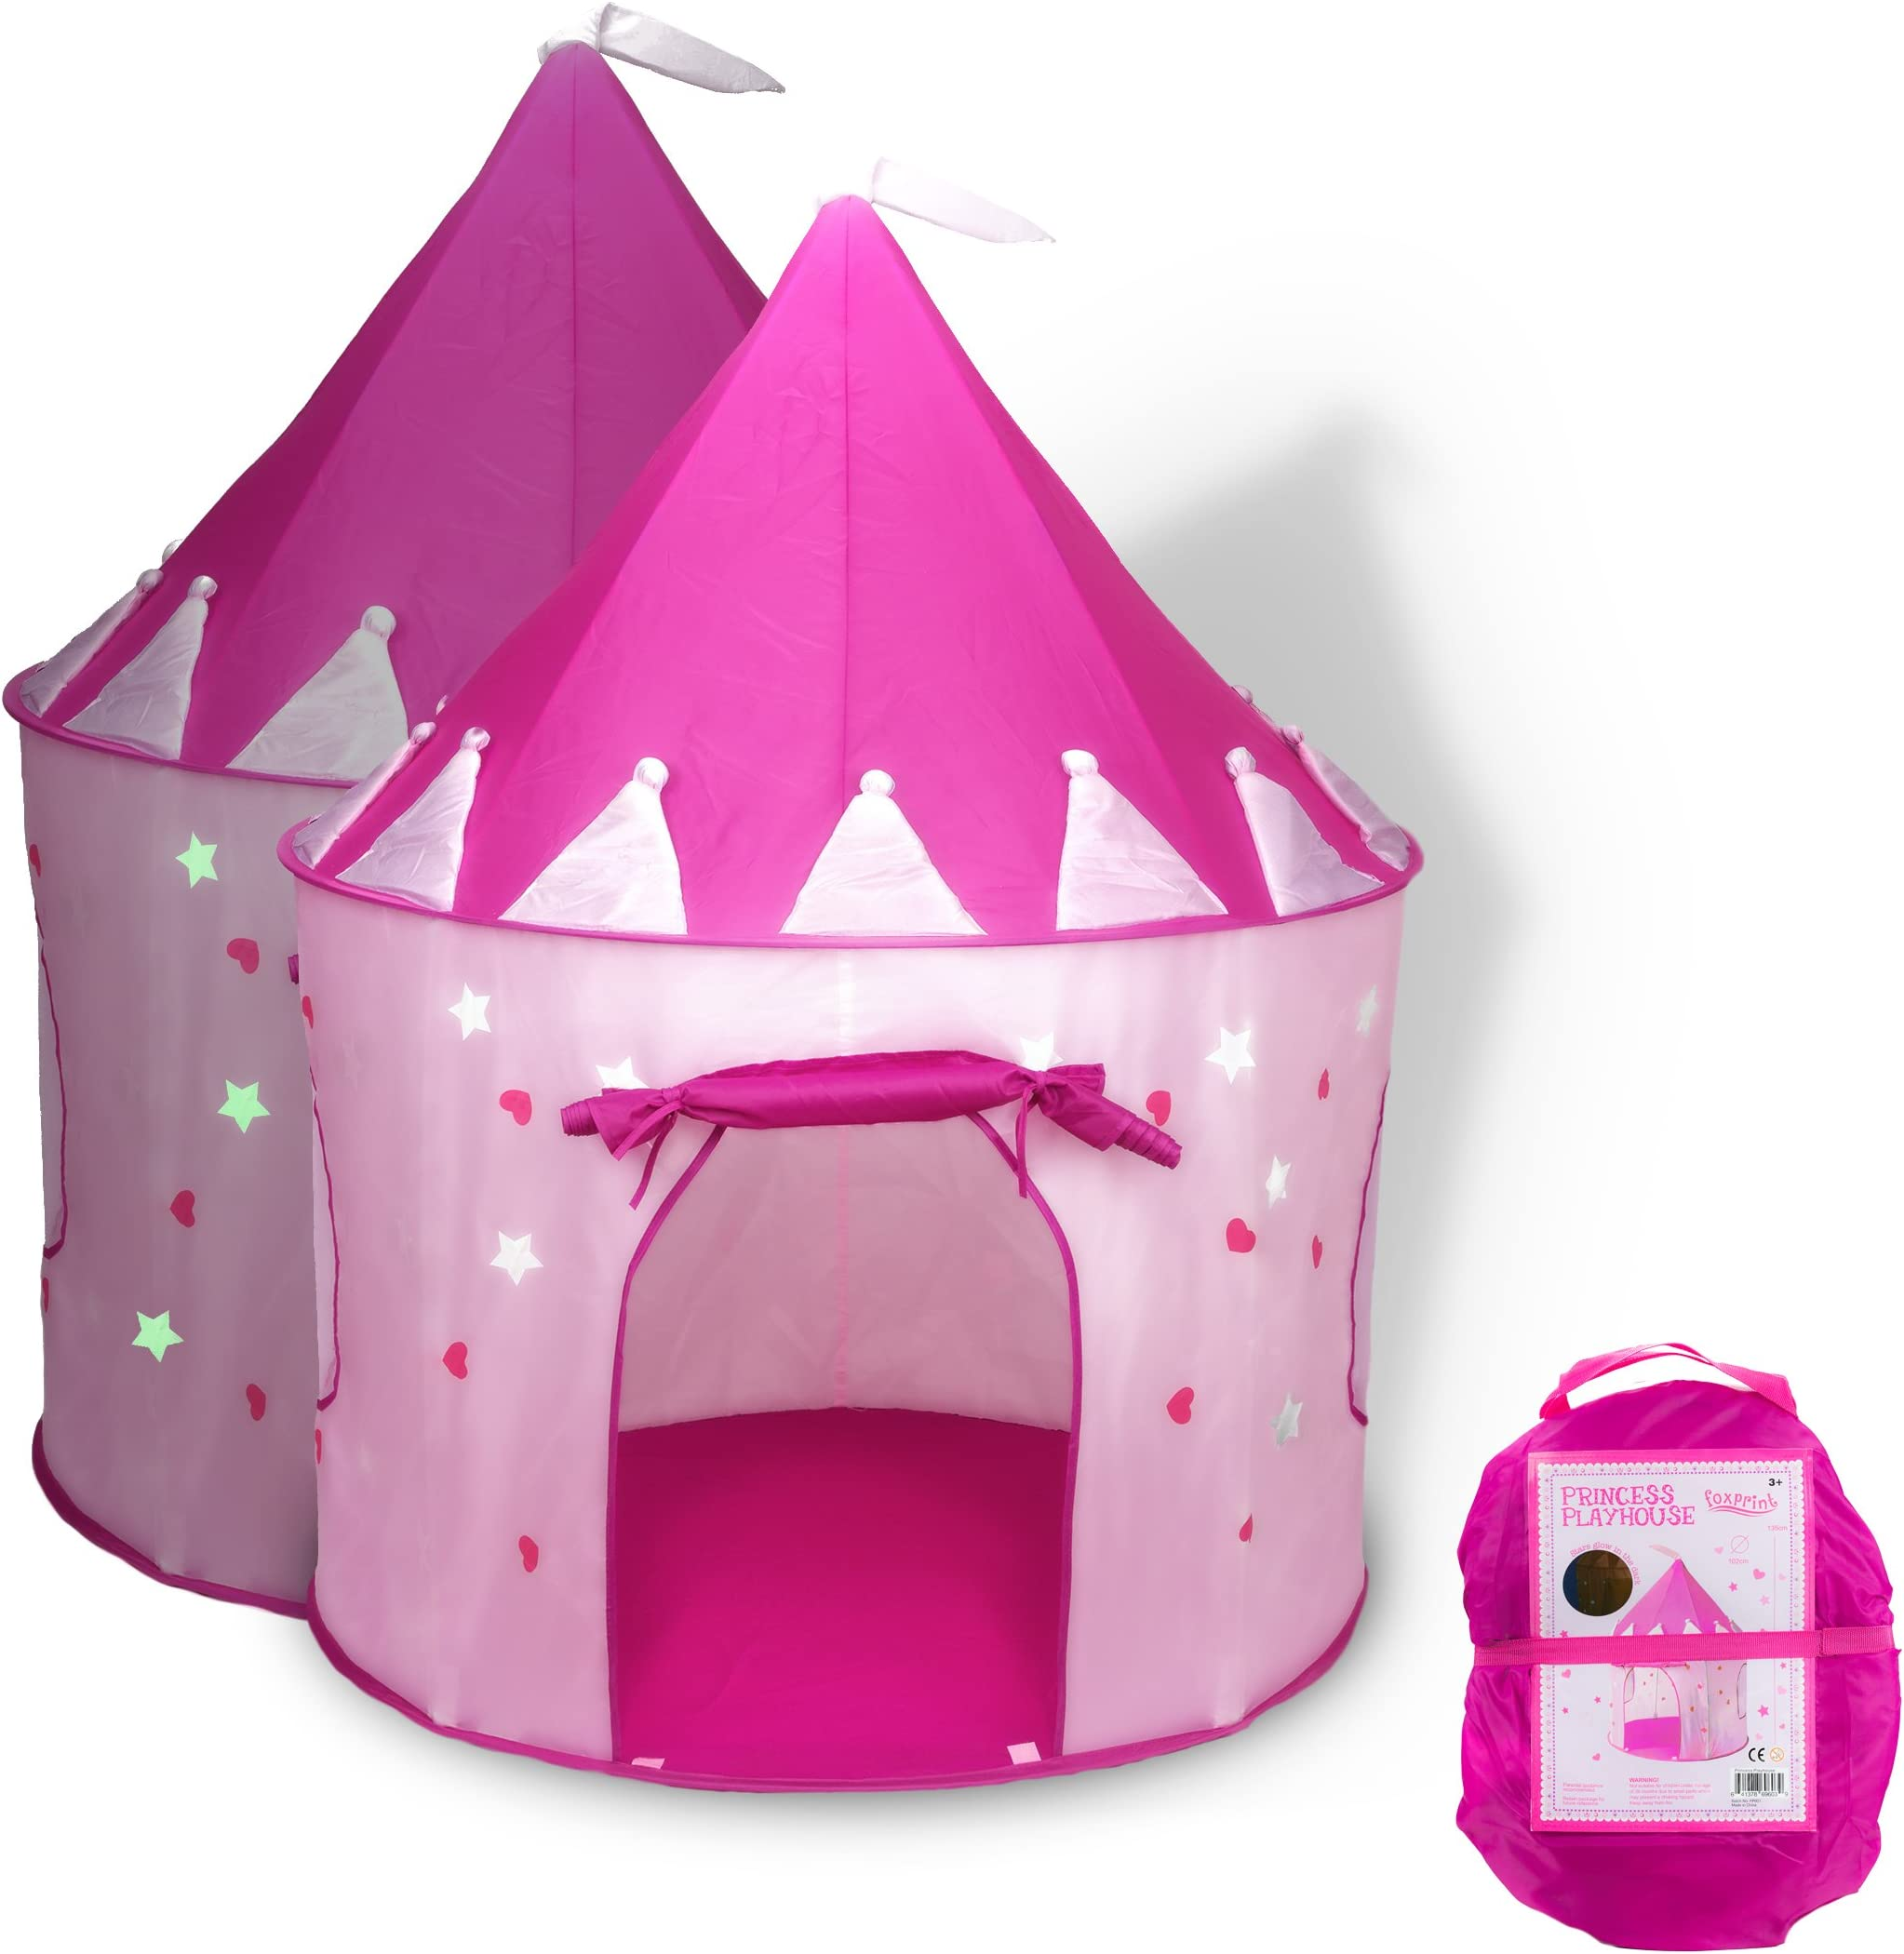 Best sellers  sc 1 st  Amazon.com & Amazon.com: Play Tents u0026 Tunnels: Toys u0026 Games: Play Tents Play ...